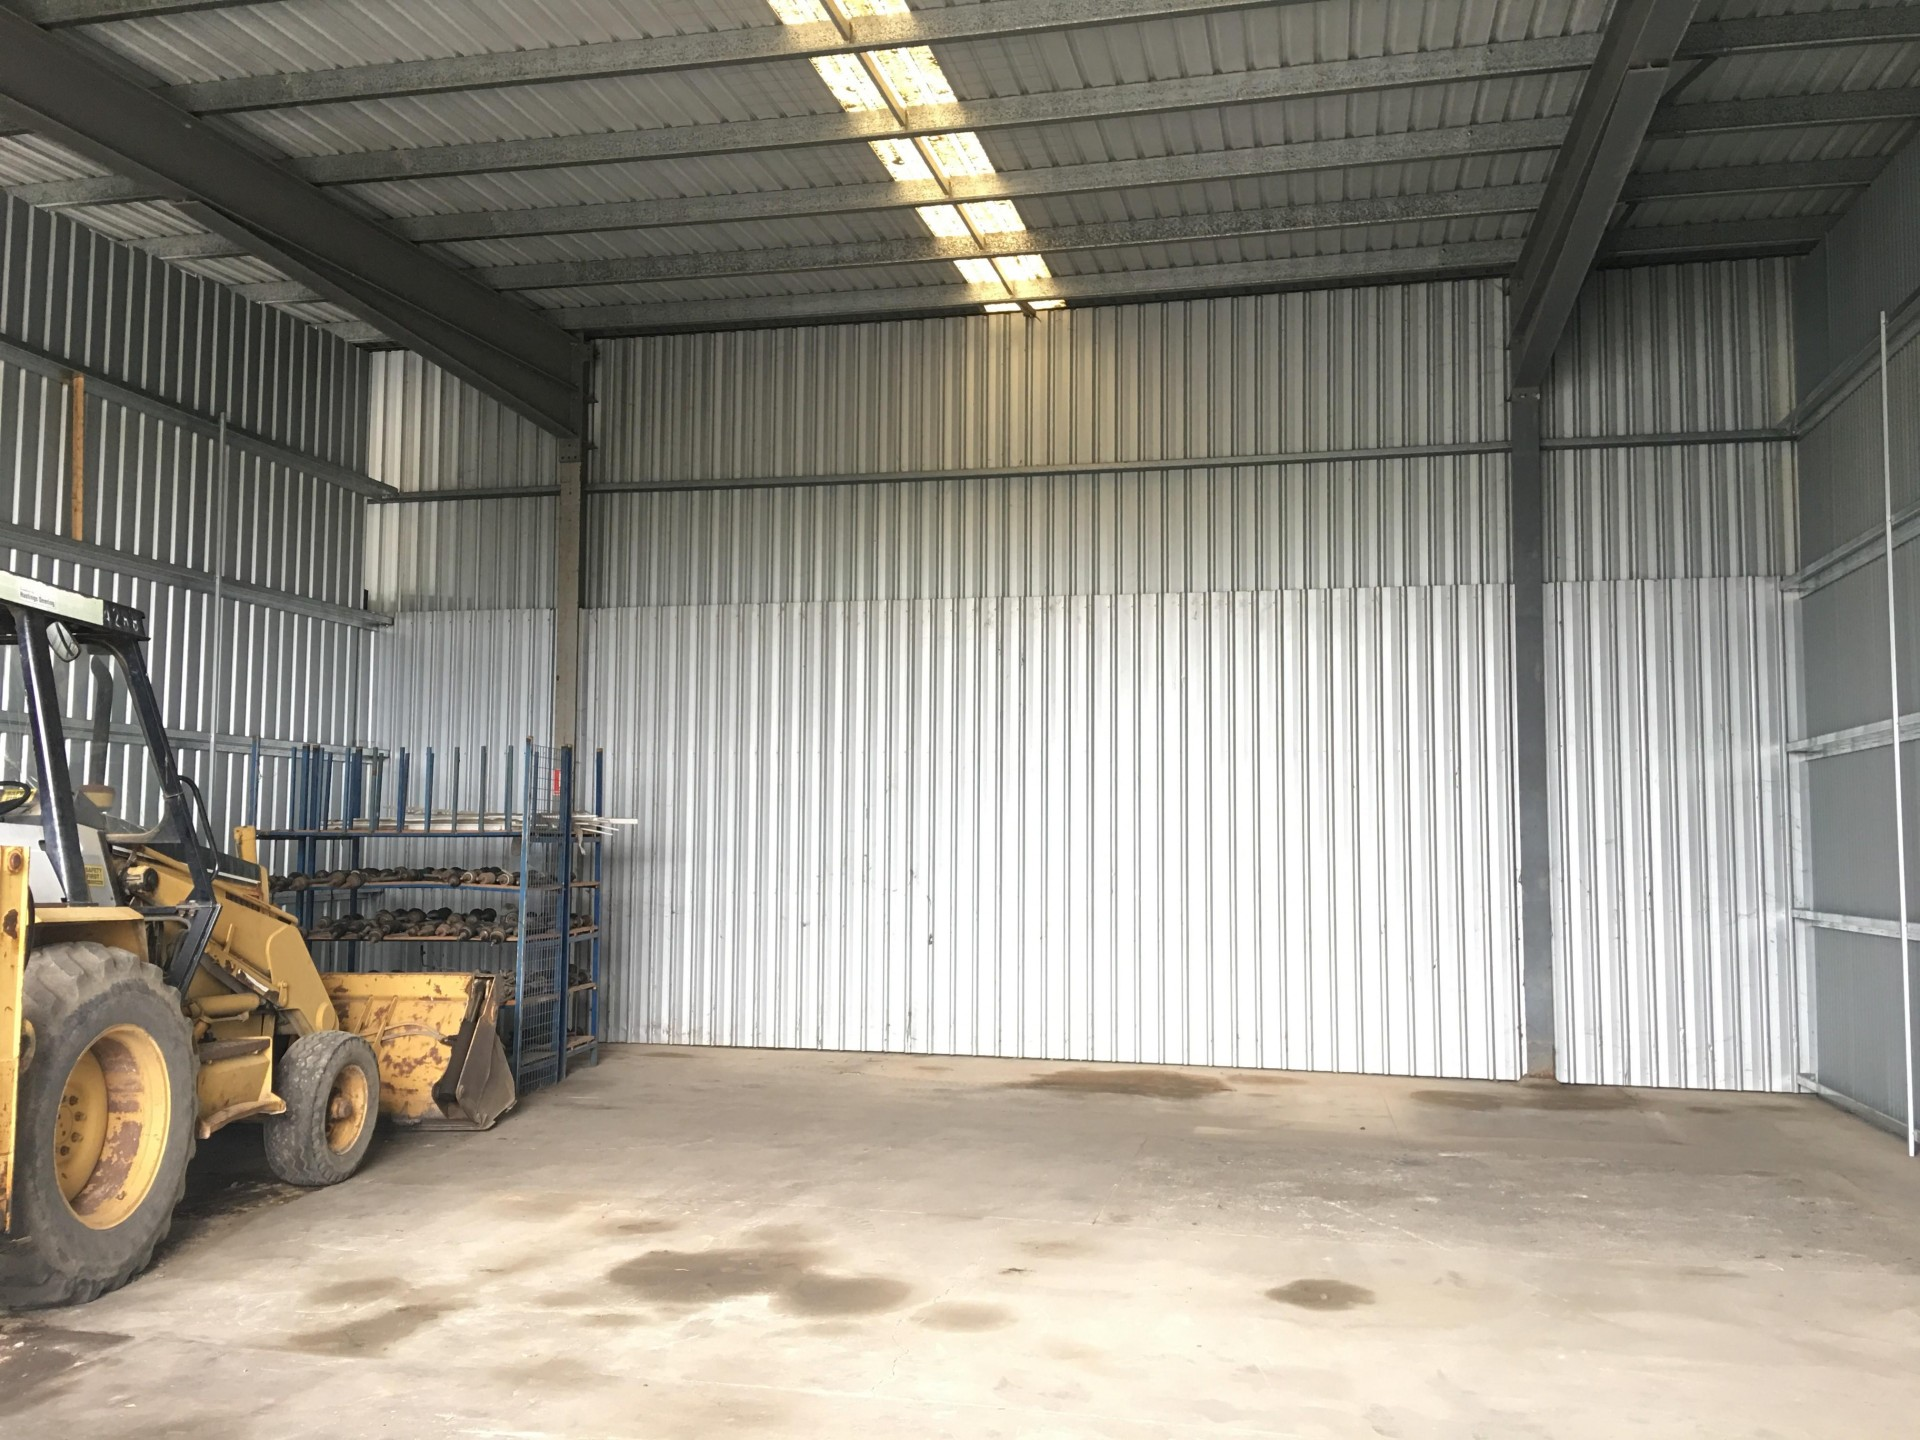 208M2 METAL CLAD STORAGE SHED - AVAILABLE NOW!!